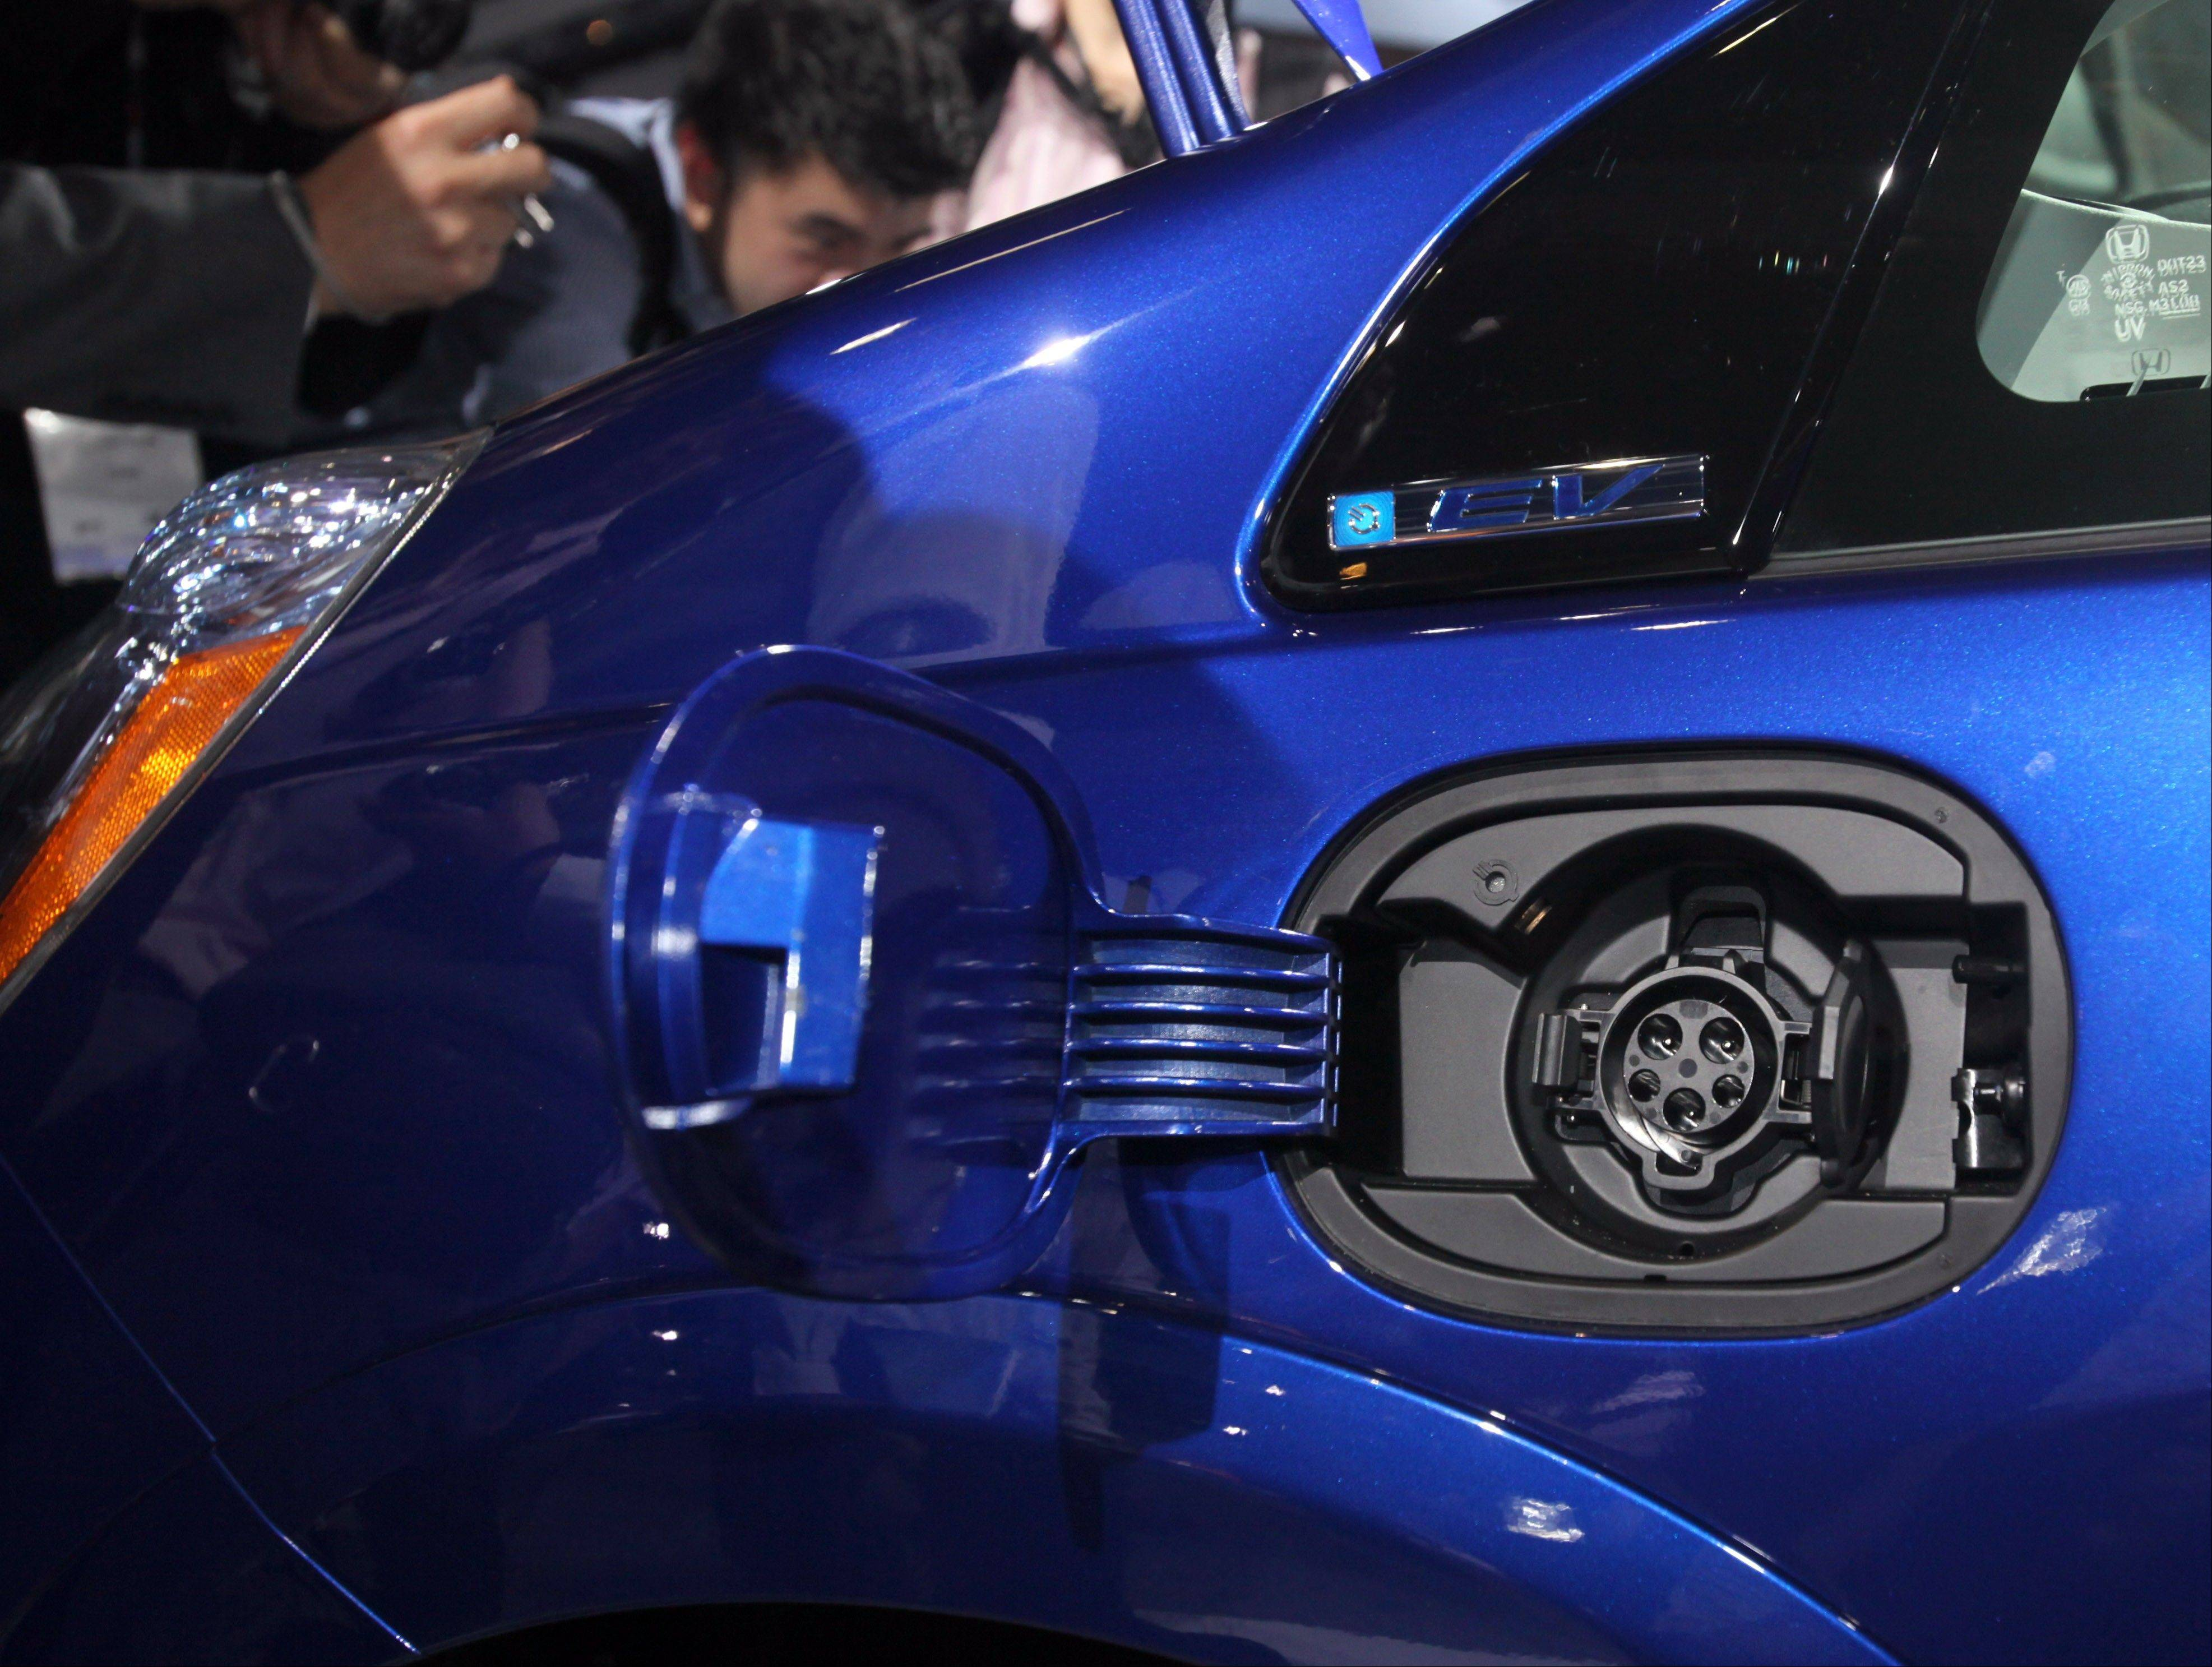 The charging port on the new all-electric 2013 Honda Fit EV is seen during its debut at the Los Angeles Auto Show, in Los Angeles. Honda said Wednesday that the 2013 Fit EV has received the highest fuel efficiency rating ever from the Environmental Protection Agency.